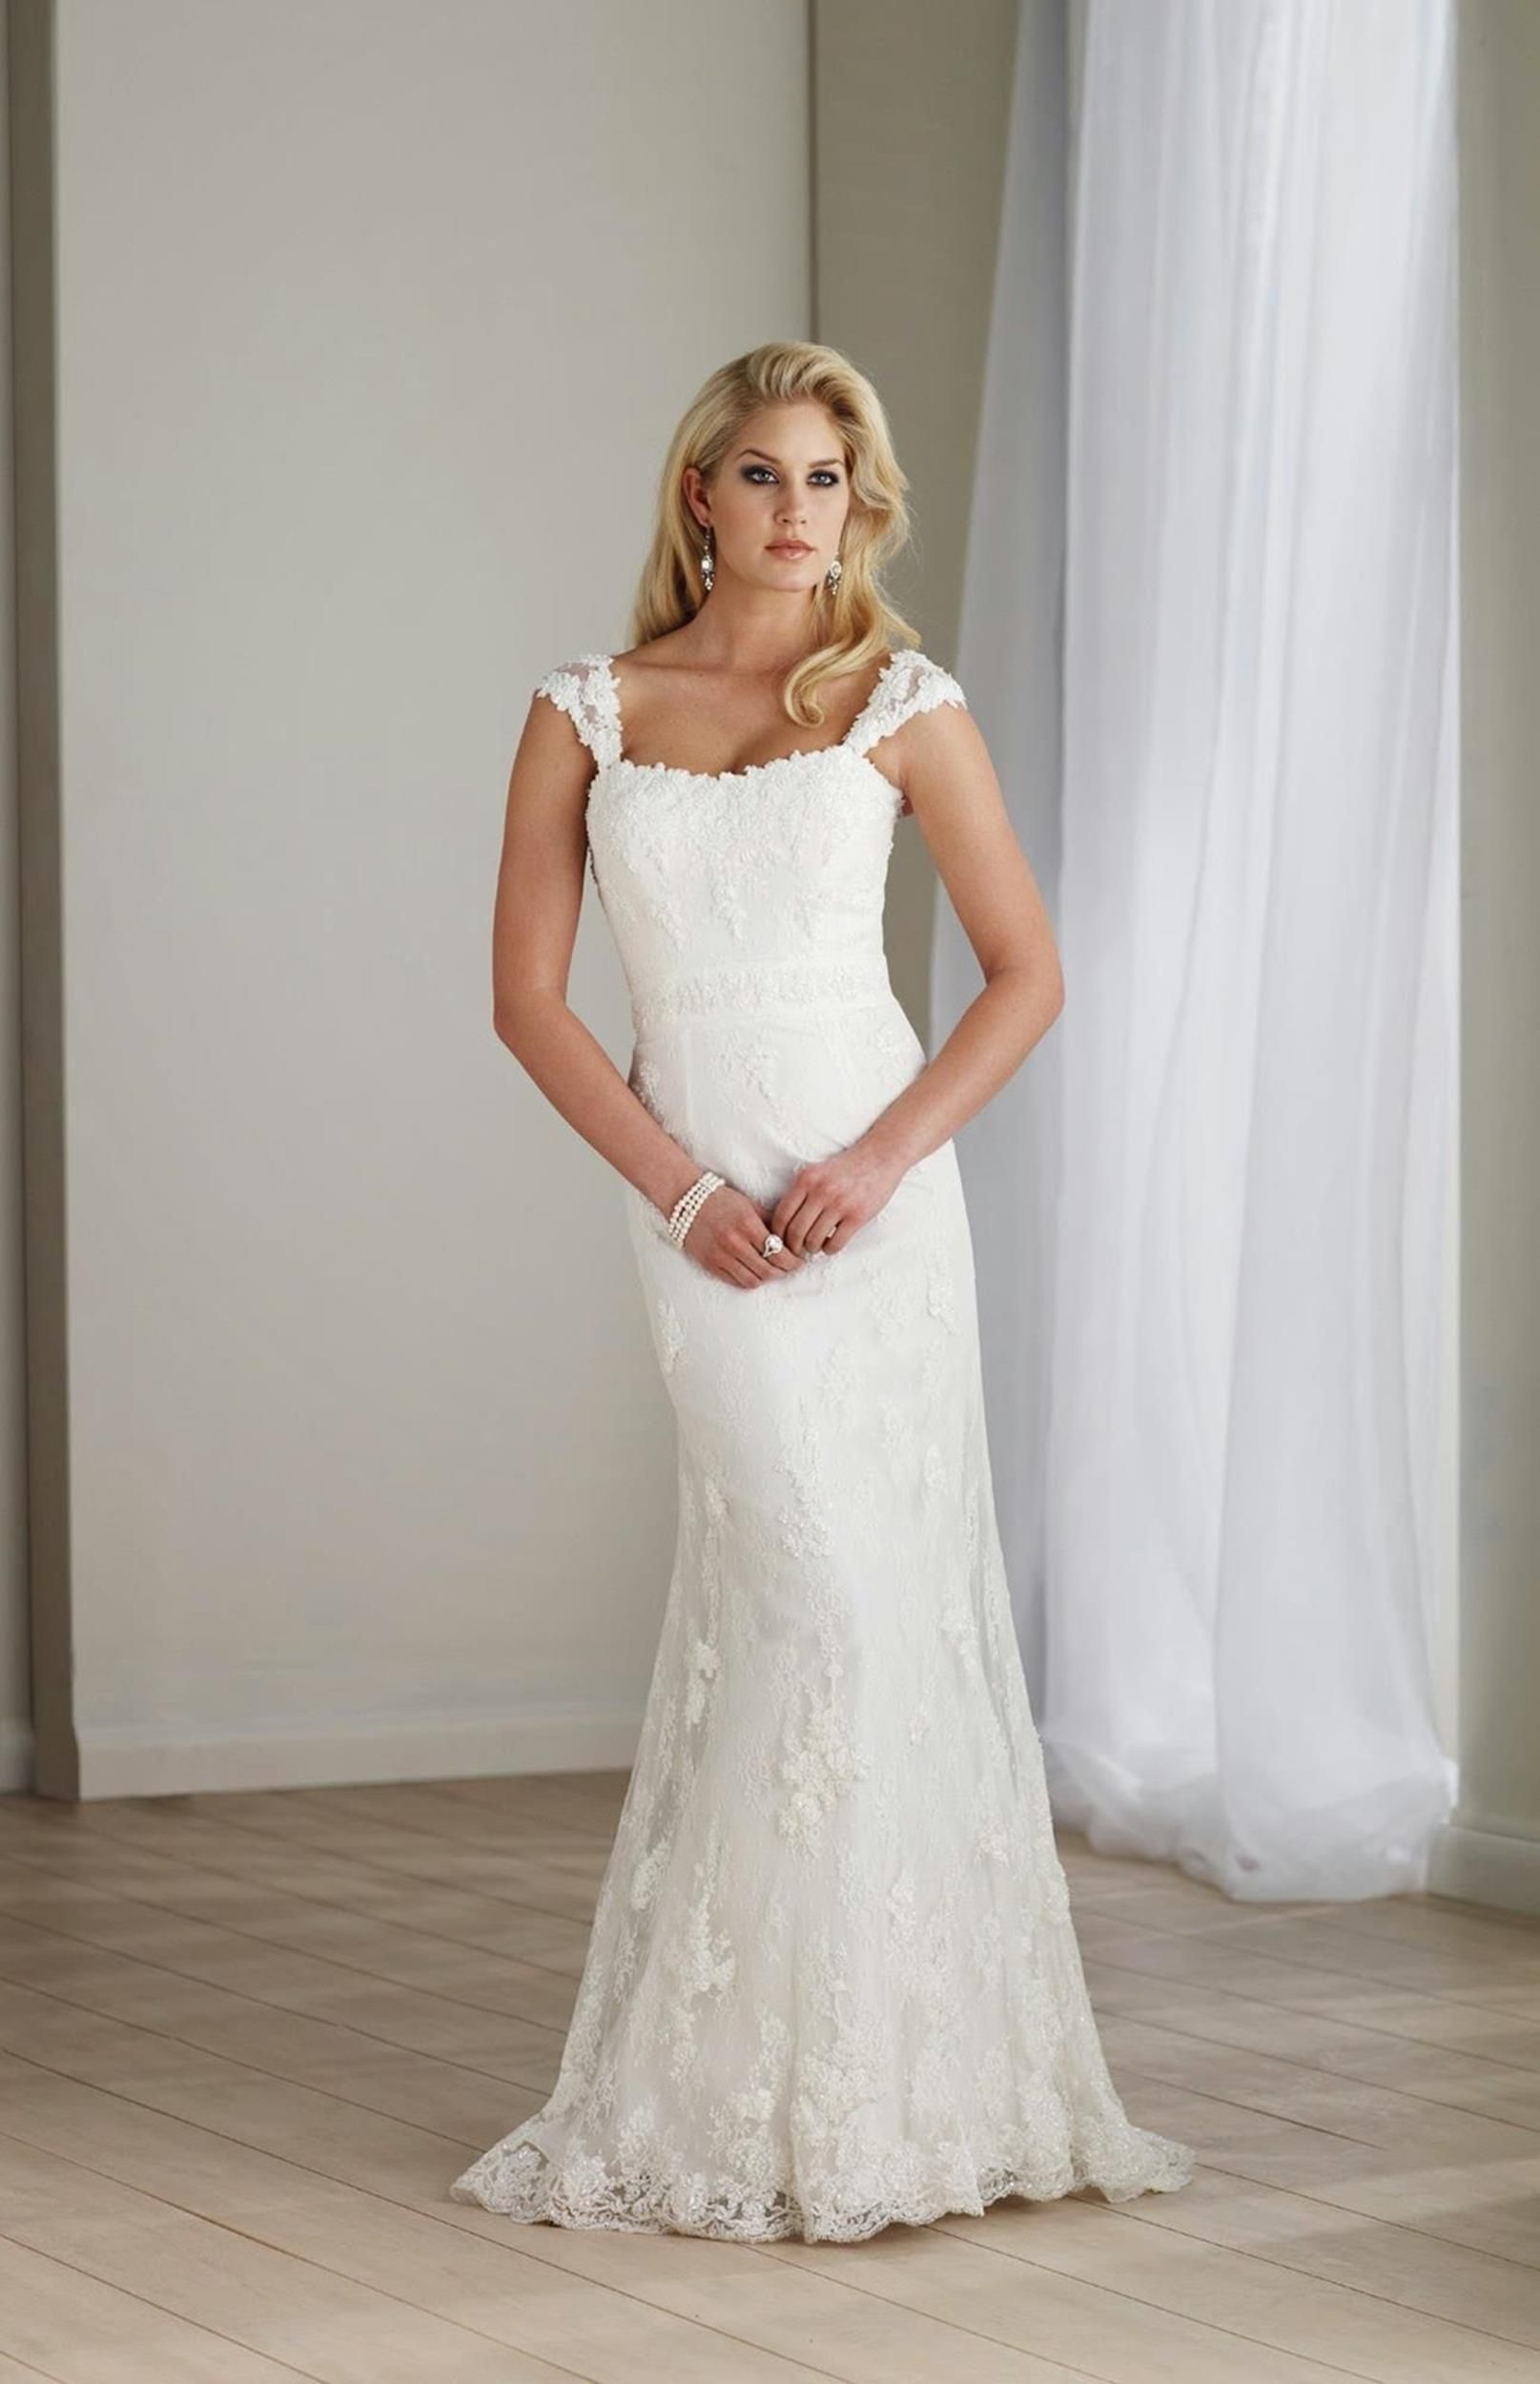 12++ Second marriage wedding dresses ideas ideas in 2021